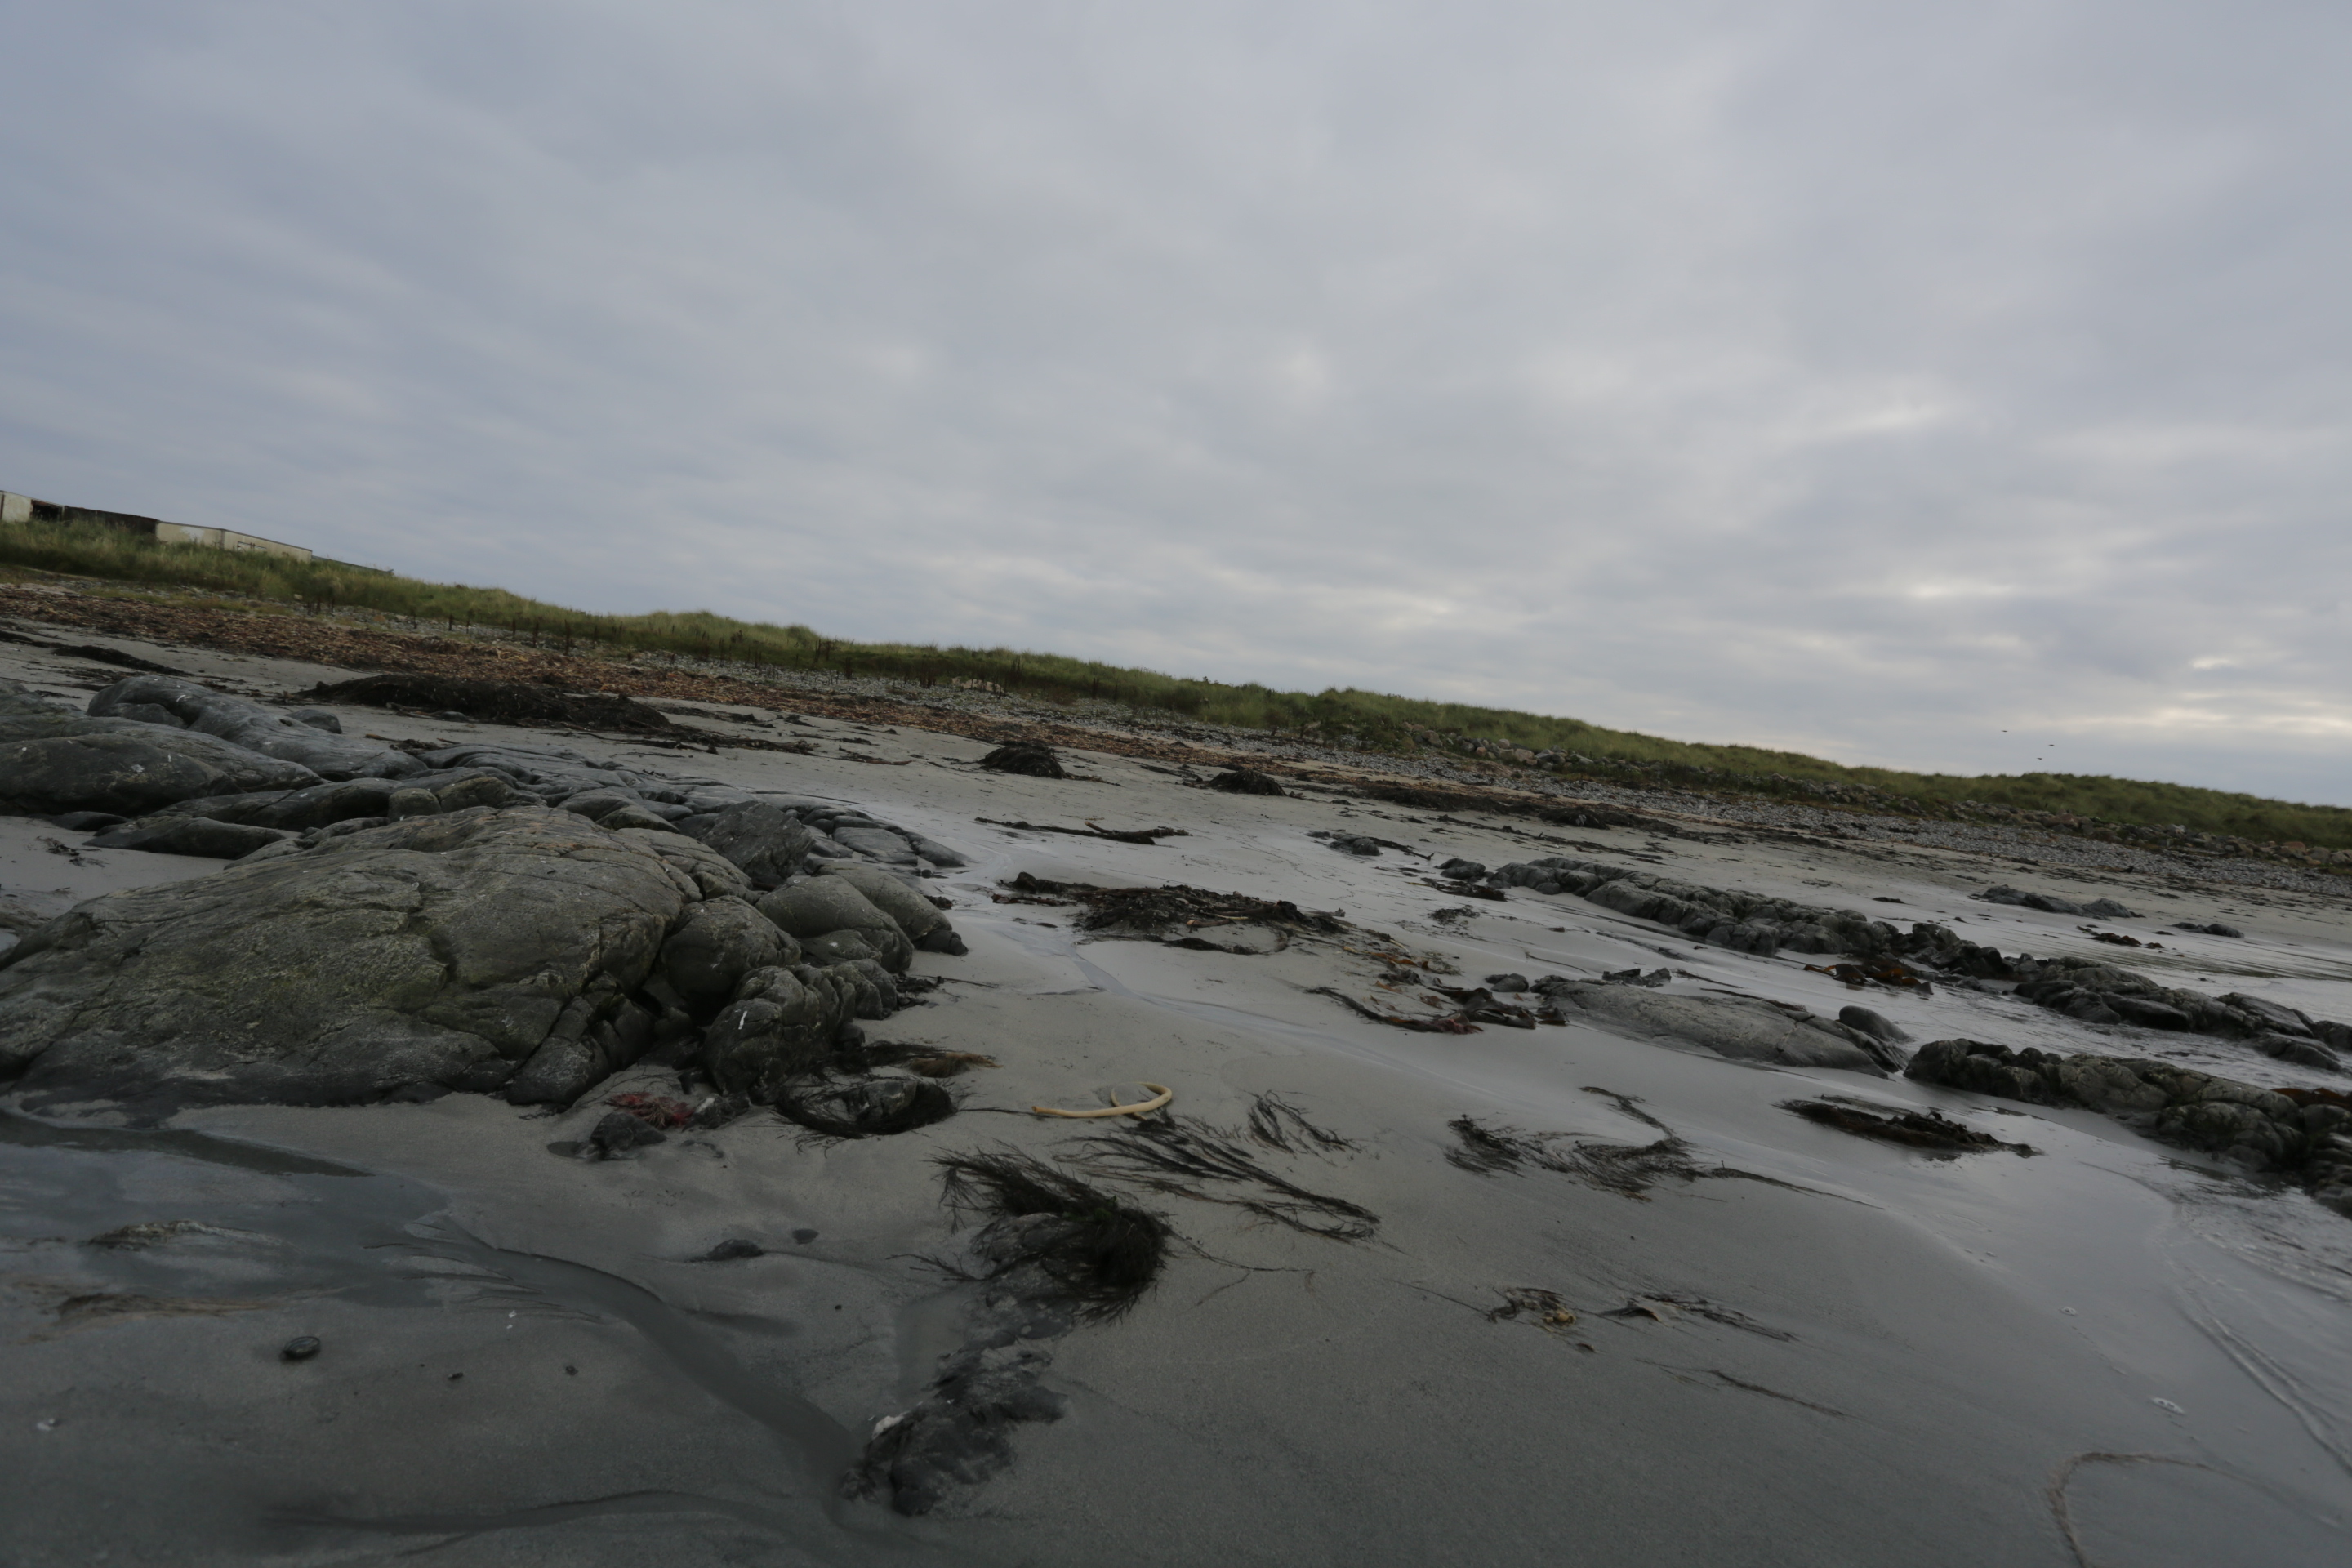 Cairnbulg beach after the clean